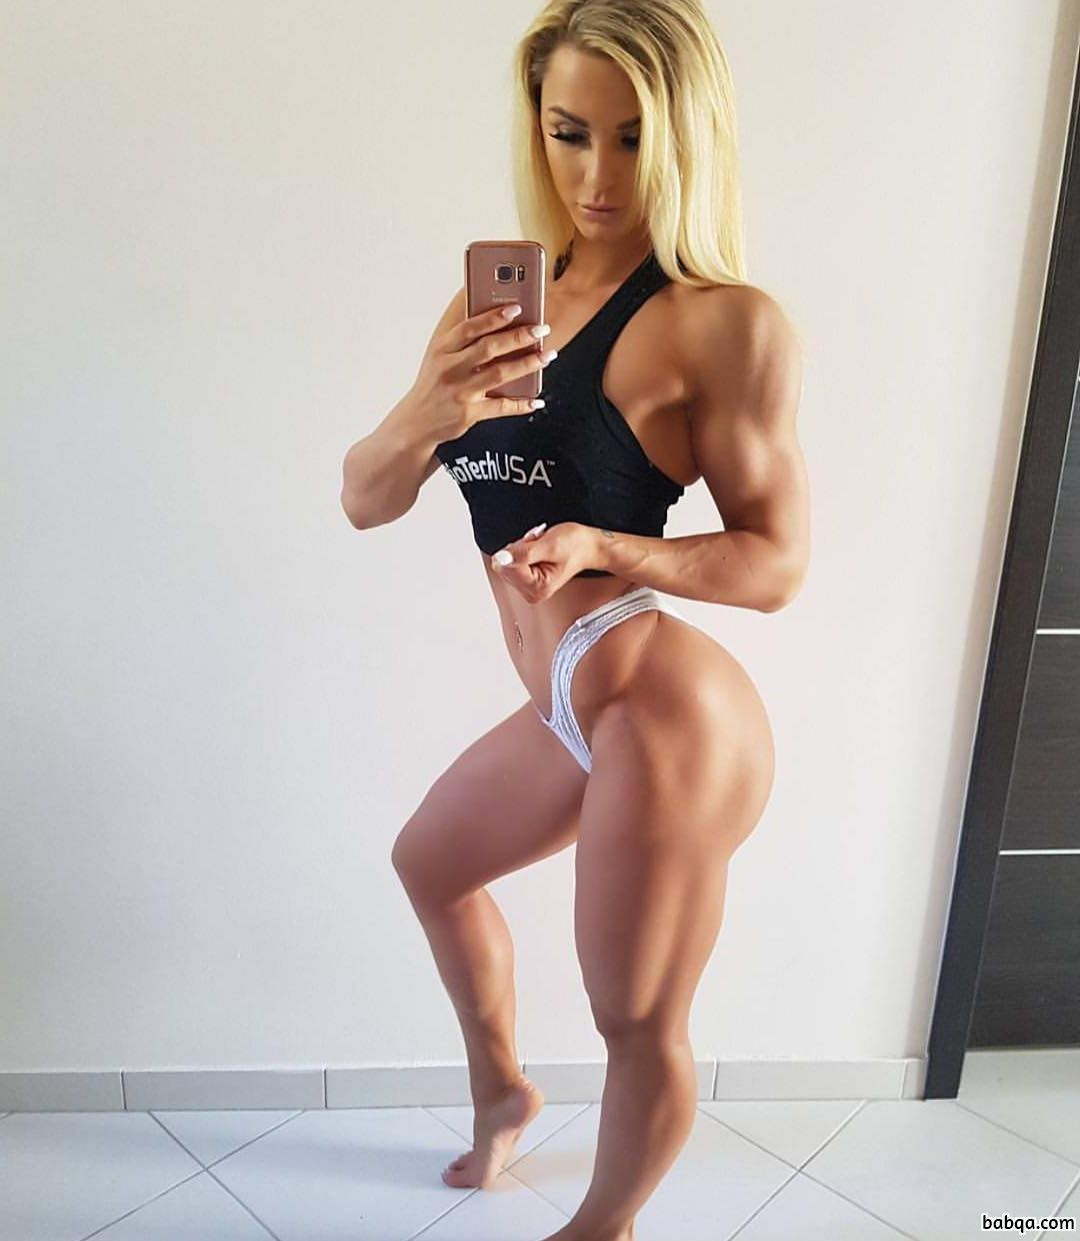 hot female with muscle body and muscle arms pic from flickr